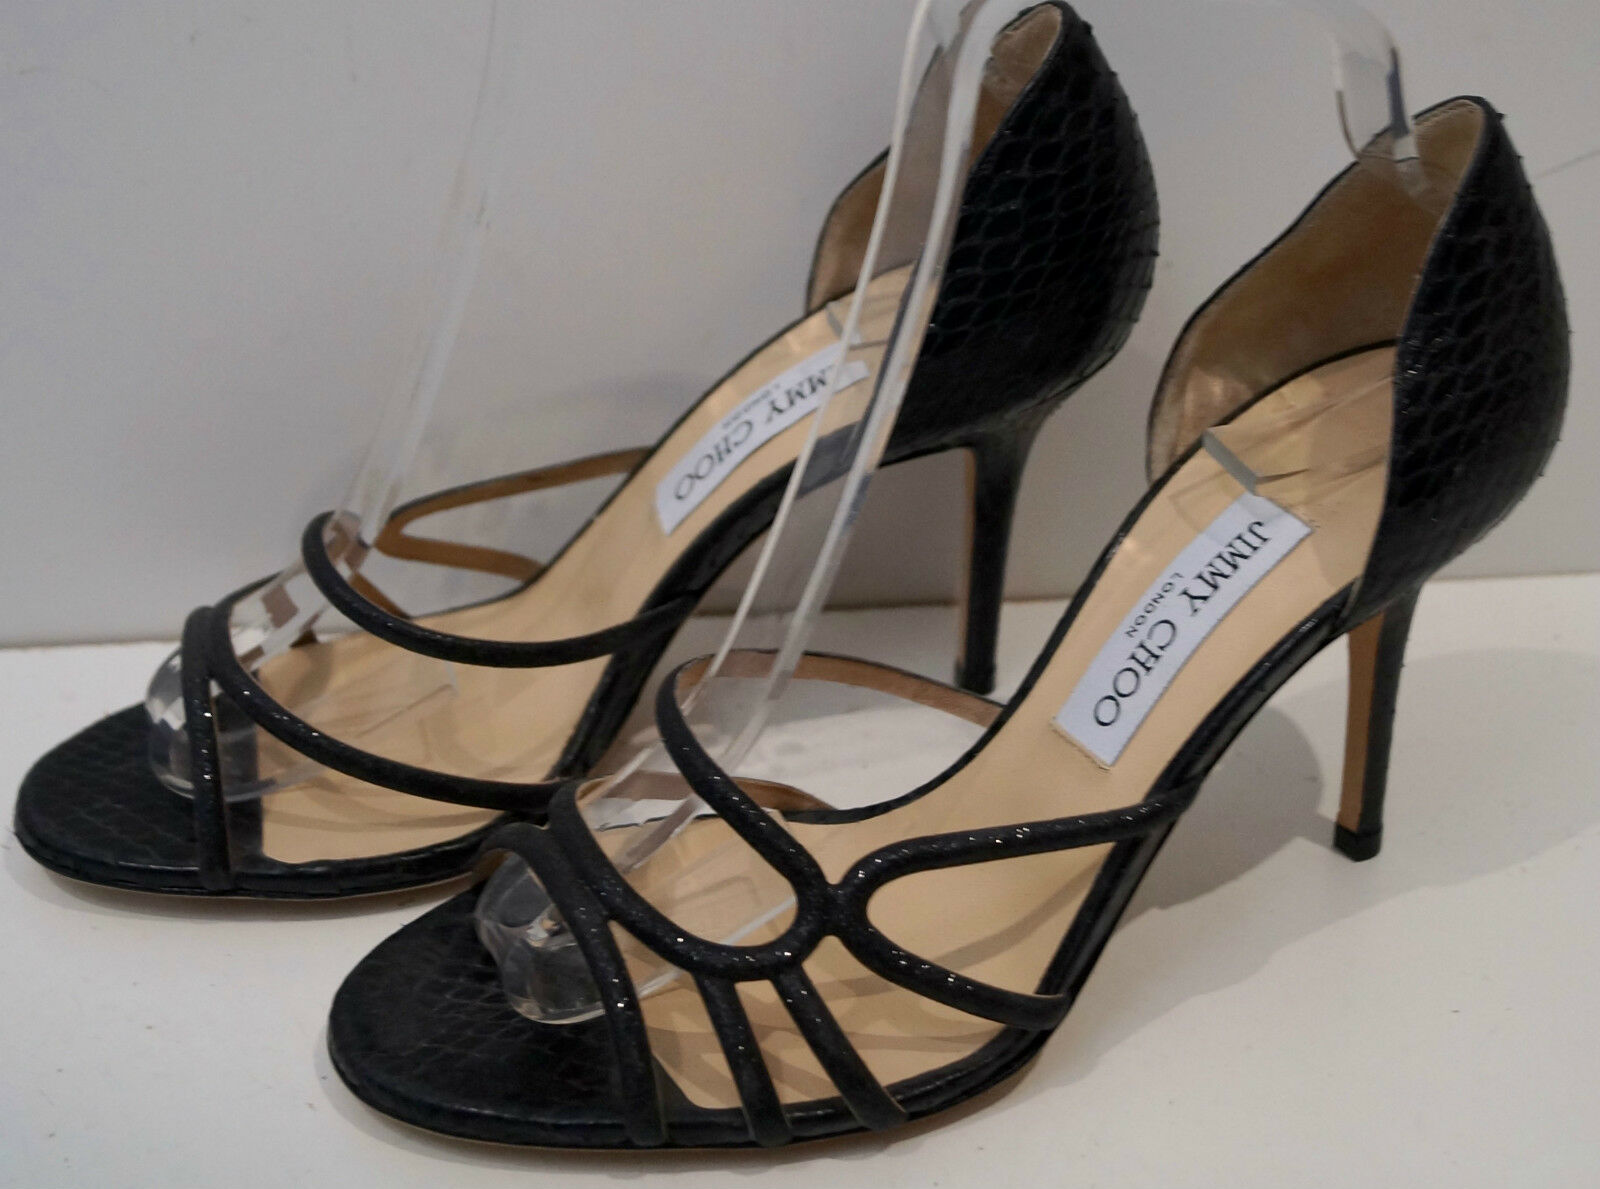 JIMMY CHOO Black Snakeskin & Sparkle Strappy High Heel Sandals shoes EU39 NEW